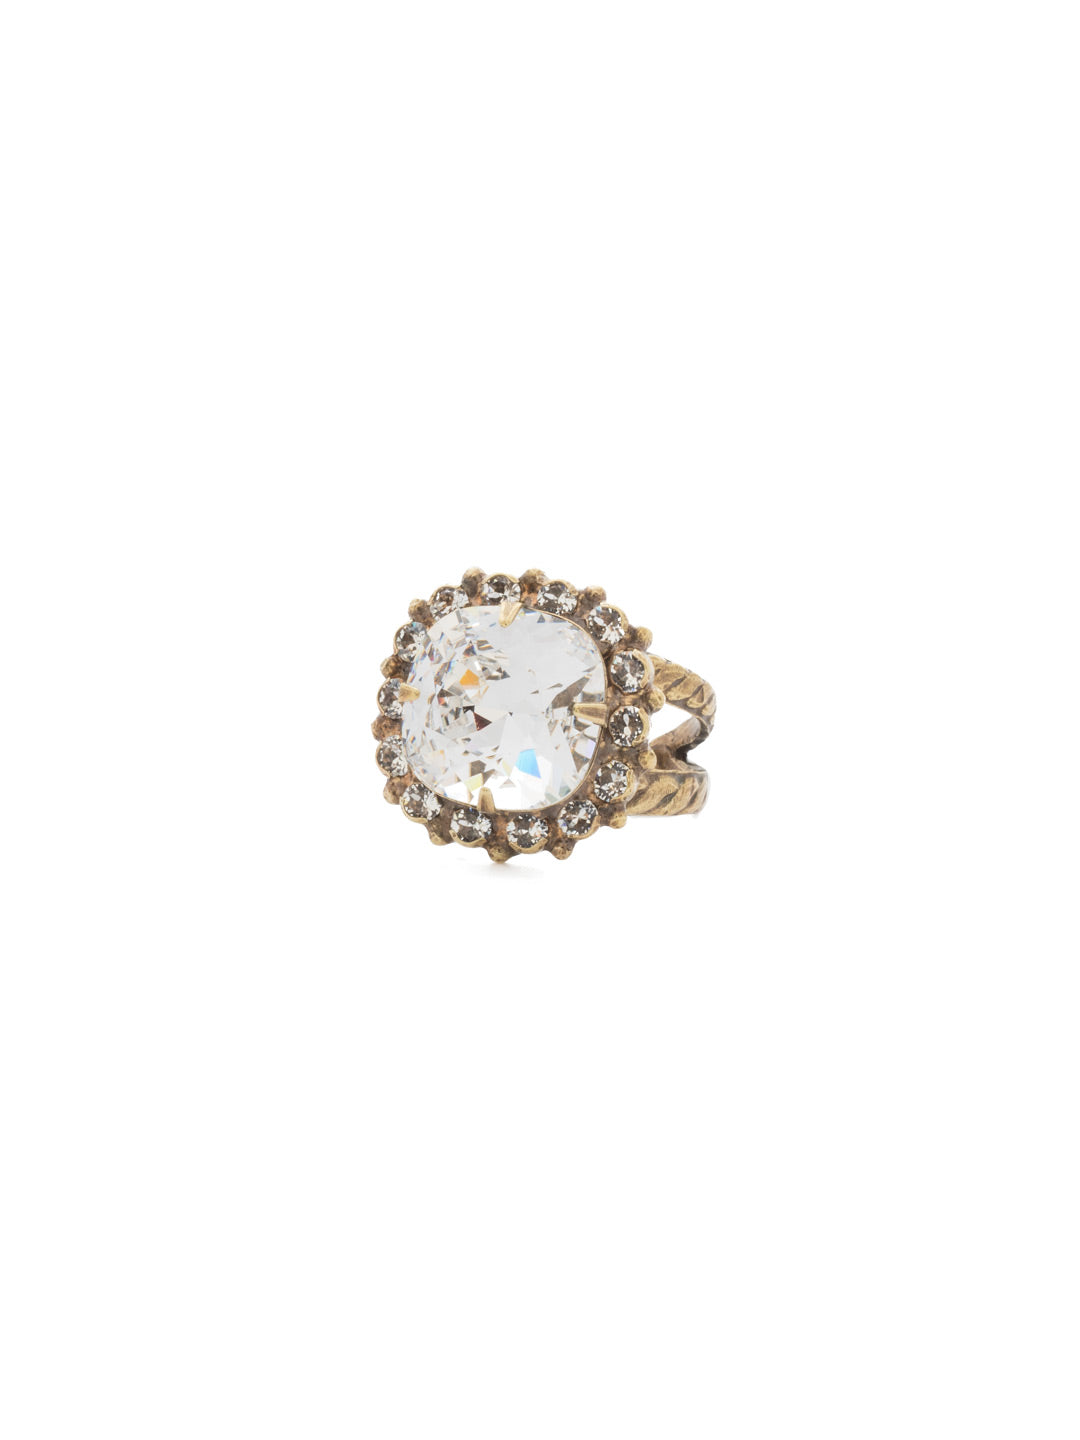 Cushion-Cut Cocktail Ring - RCR112AGCRY